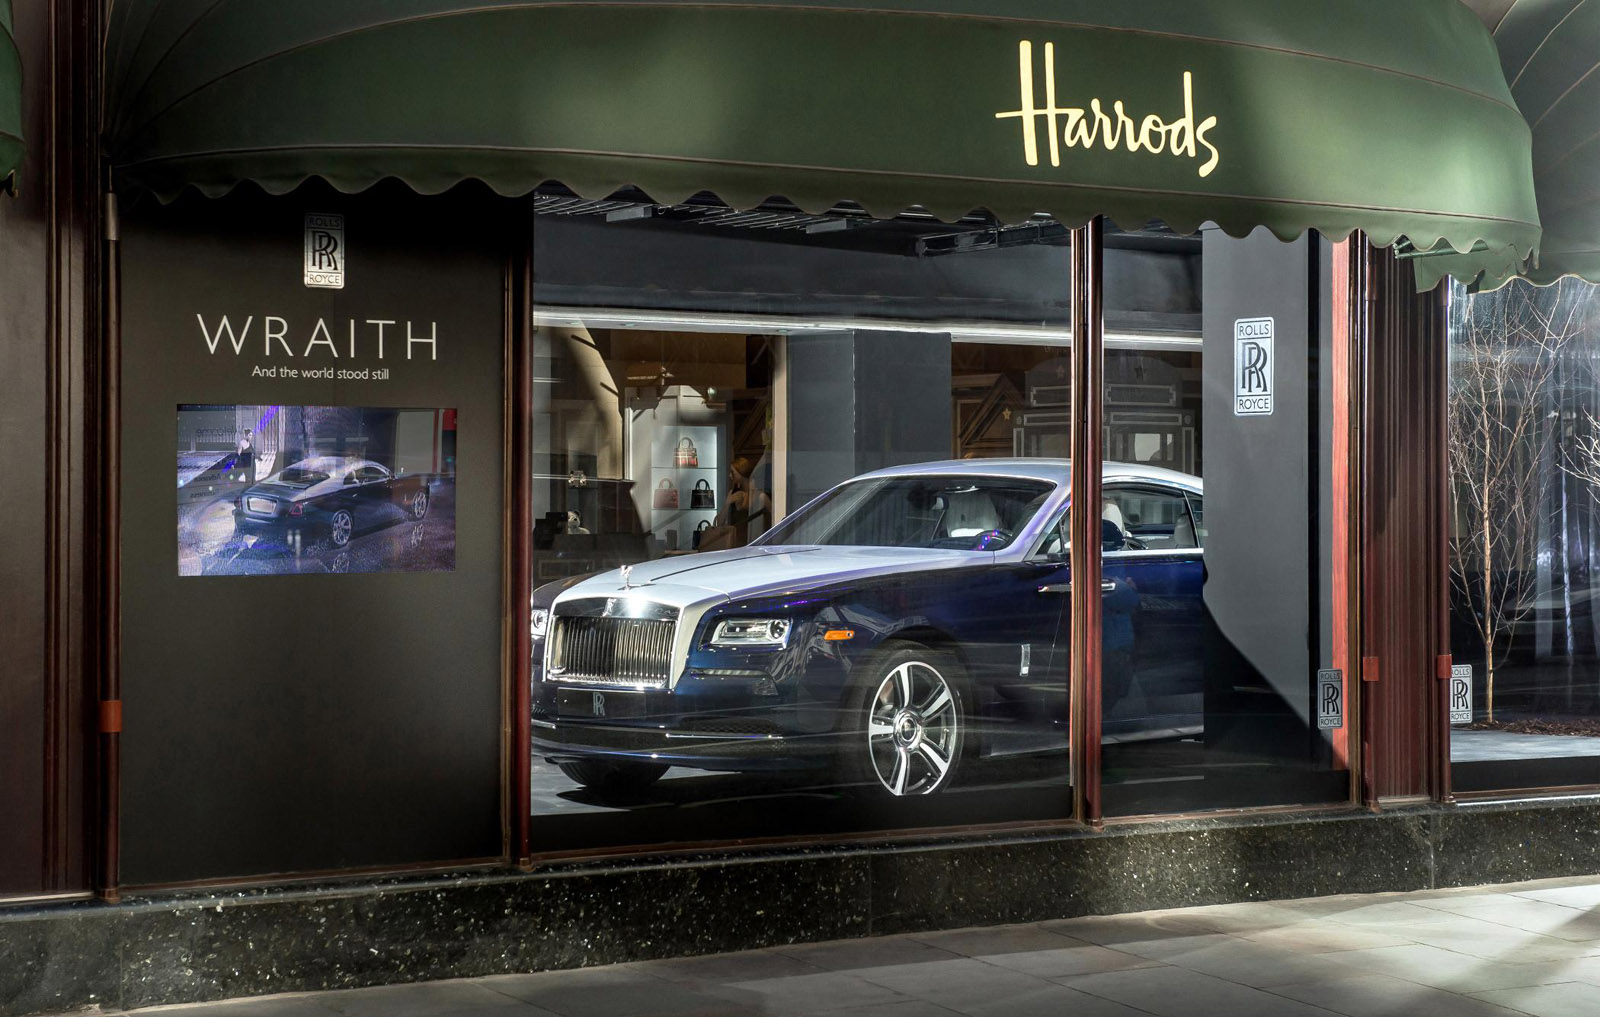 Rolls-Royce Wraith in Harrods window